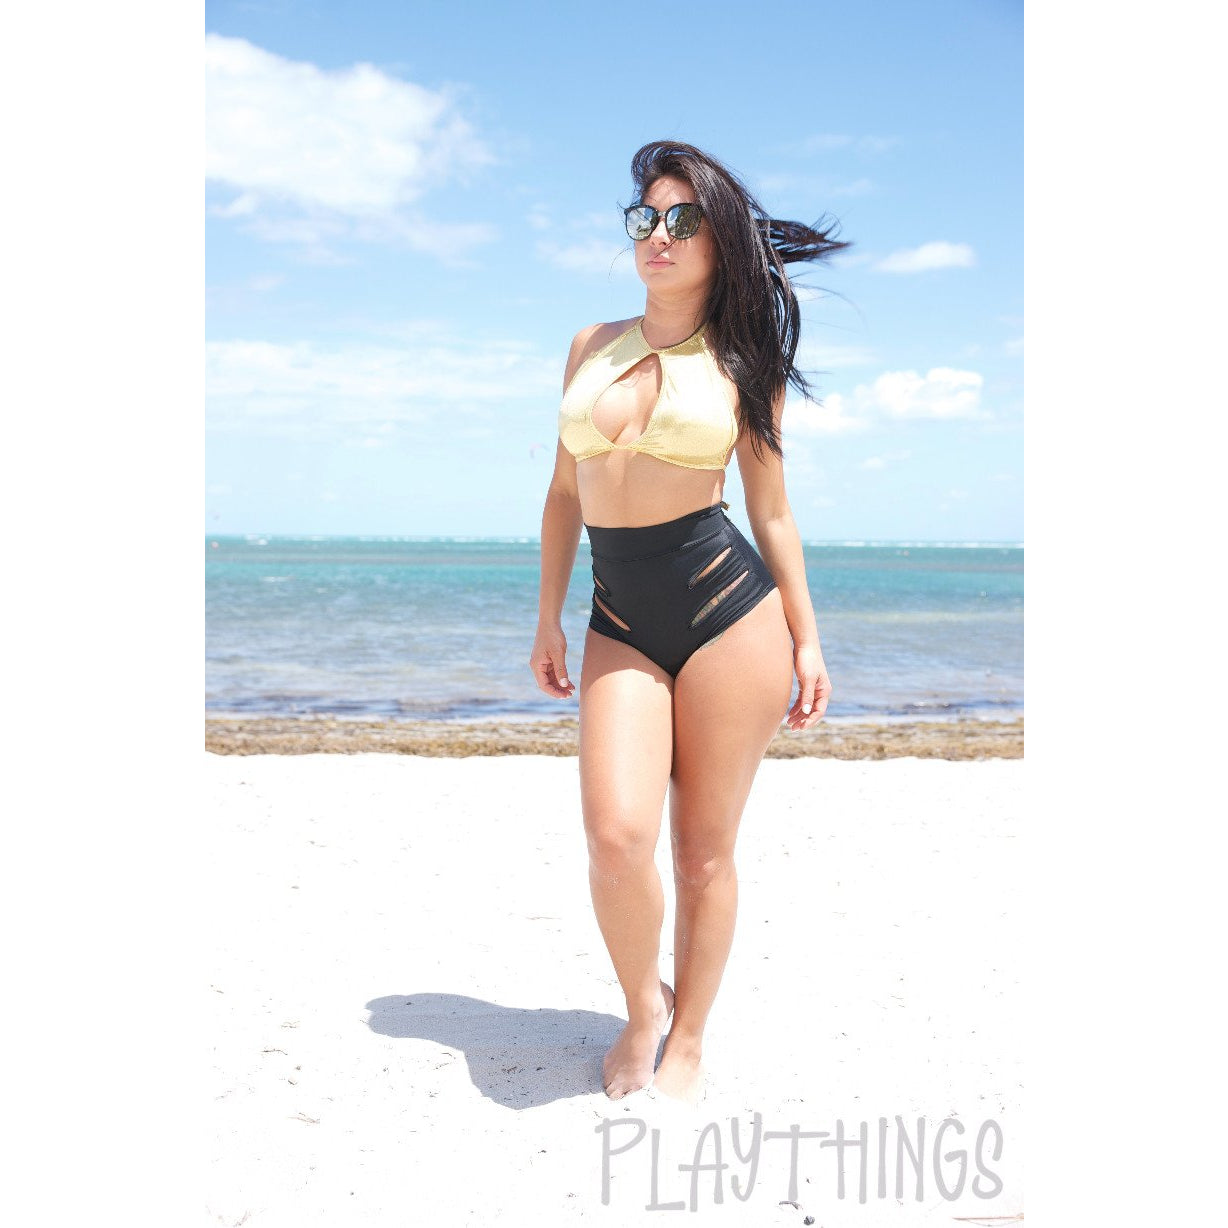 Halter Top - PlaythingsMiami